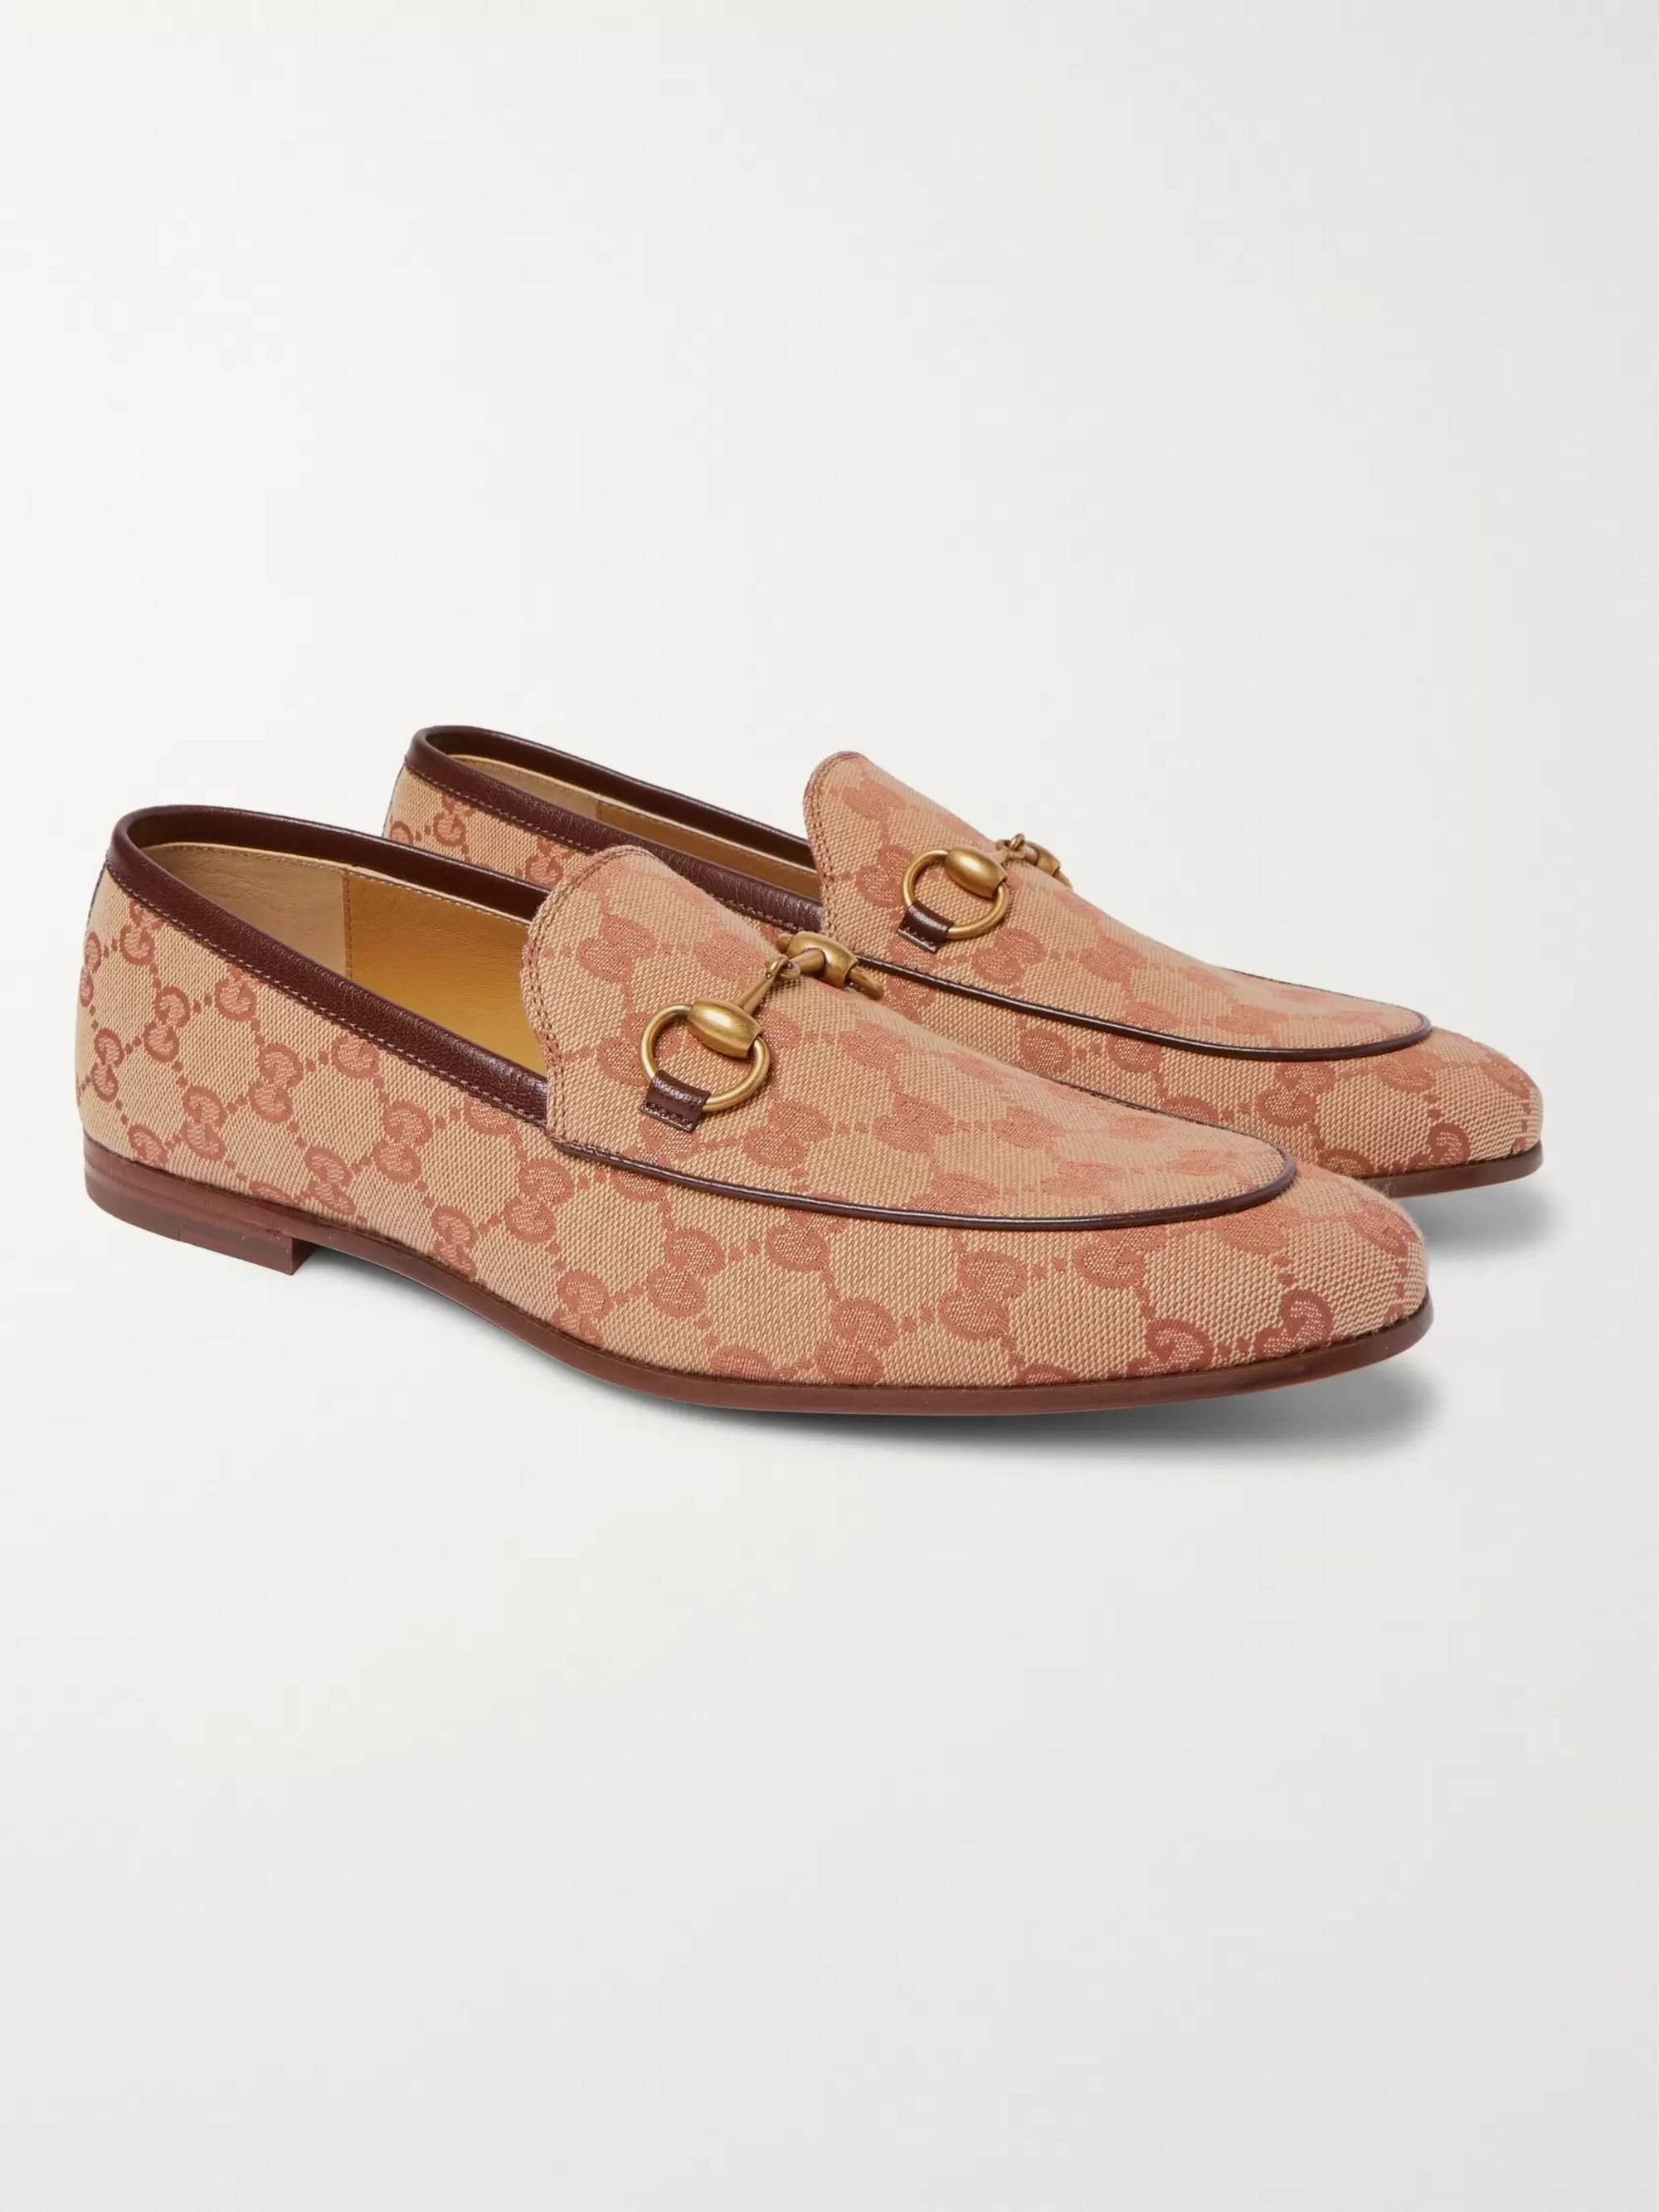 Gucci Jordaan Horsebit Leather-Trimmed Monogrammed Canvas Loafers